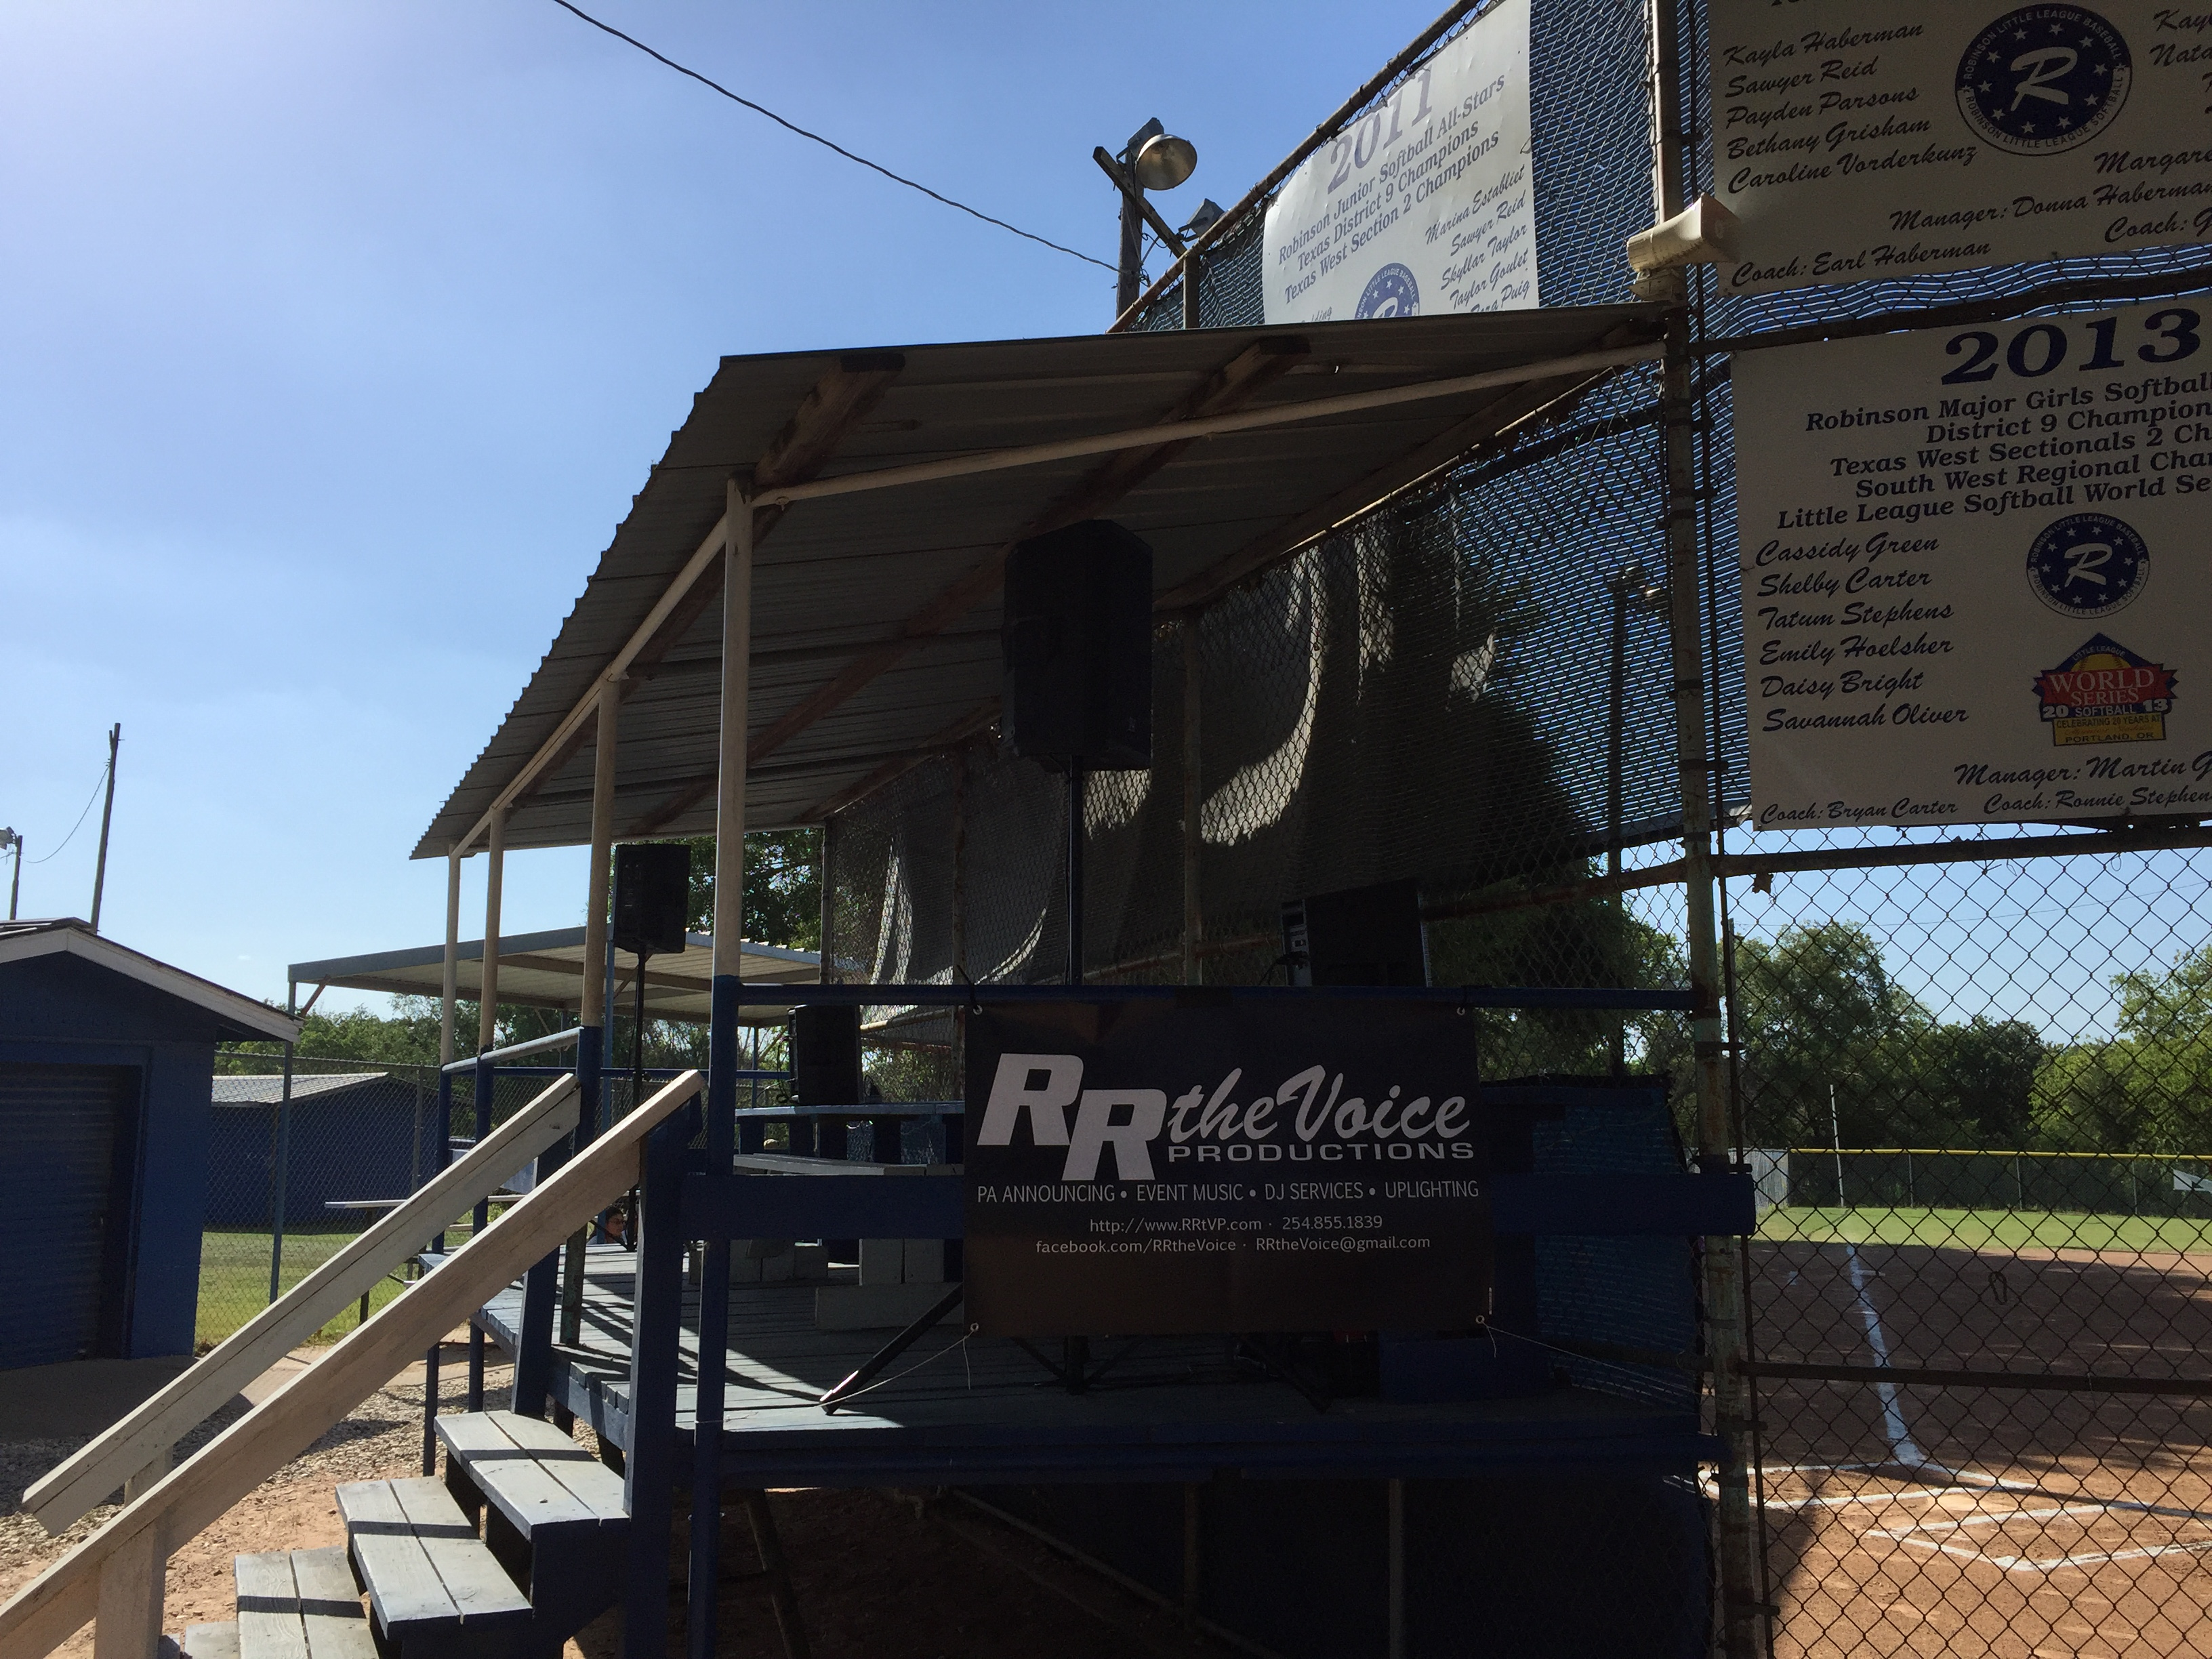 GALLERY   RRtheVoice Productions - Waco Area DJ Services and